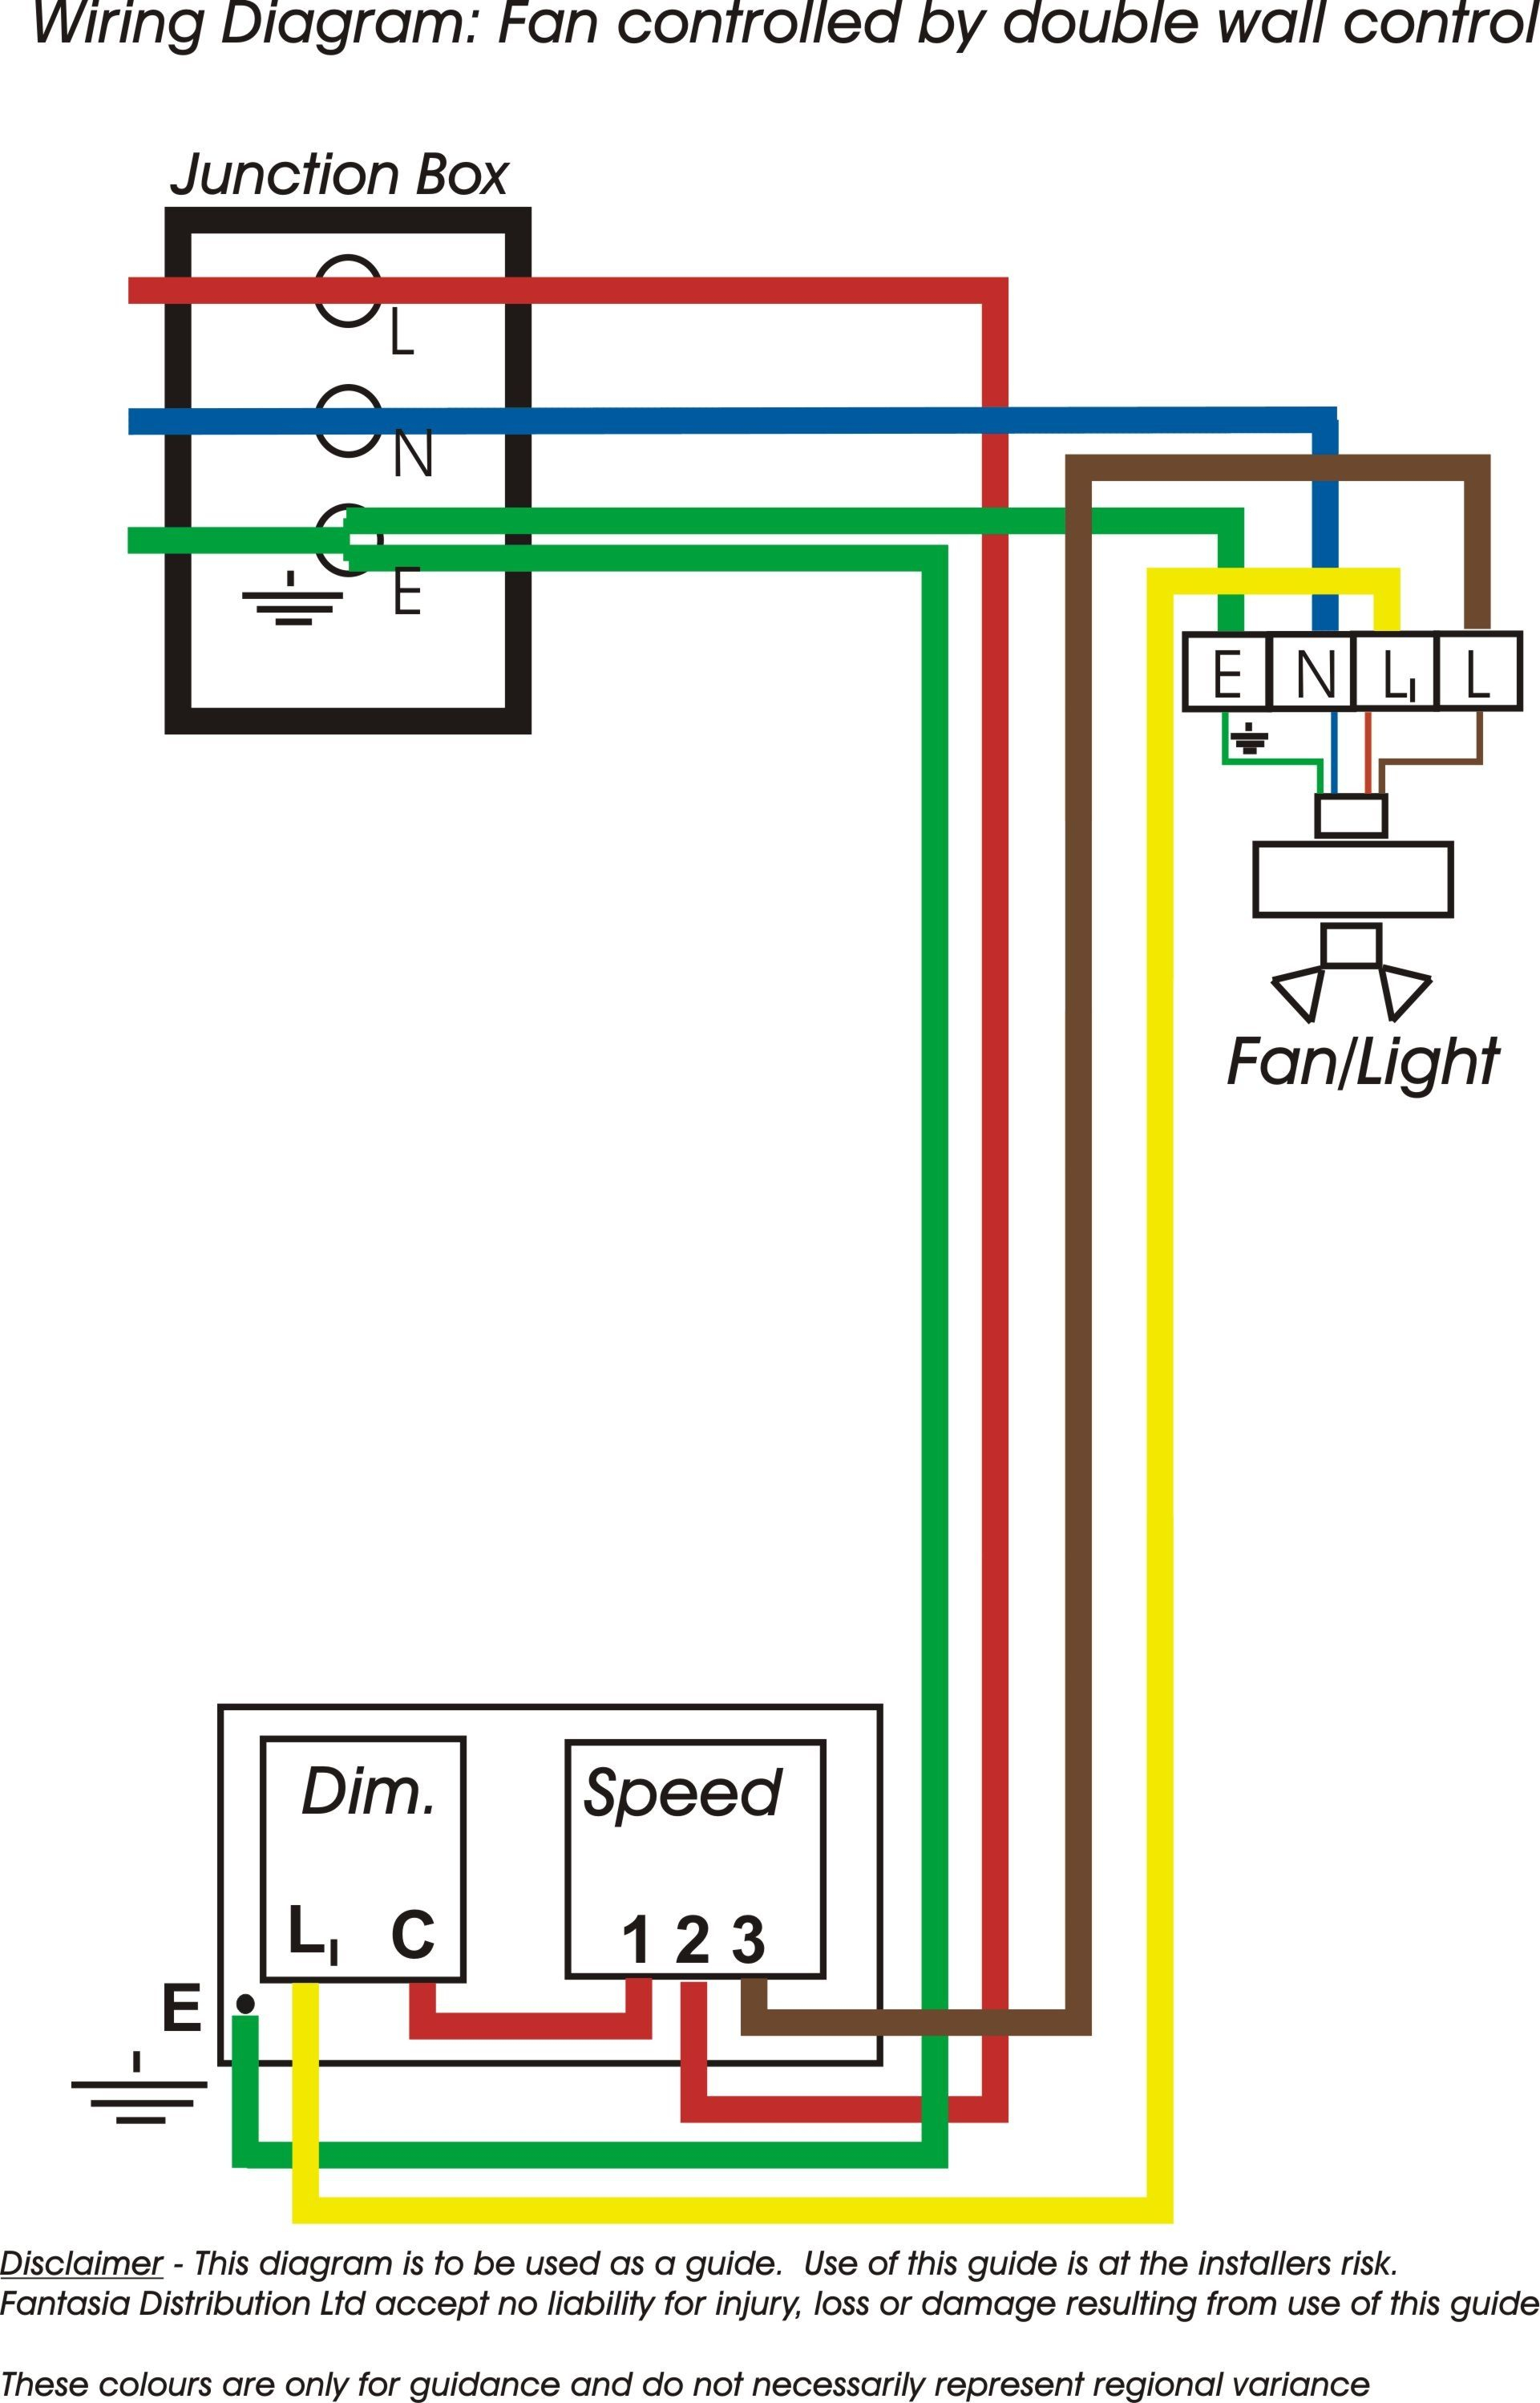 Hunter Universal Fan Remote Wiring | House | Ceiling Fan, Ceiling - Ceiling Fan Wall Switch Wiring Diagram